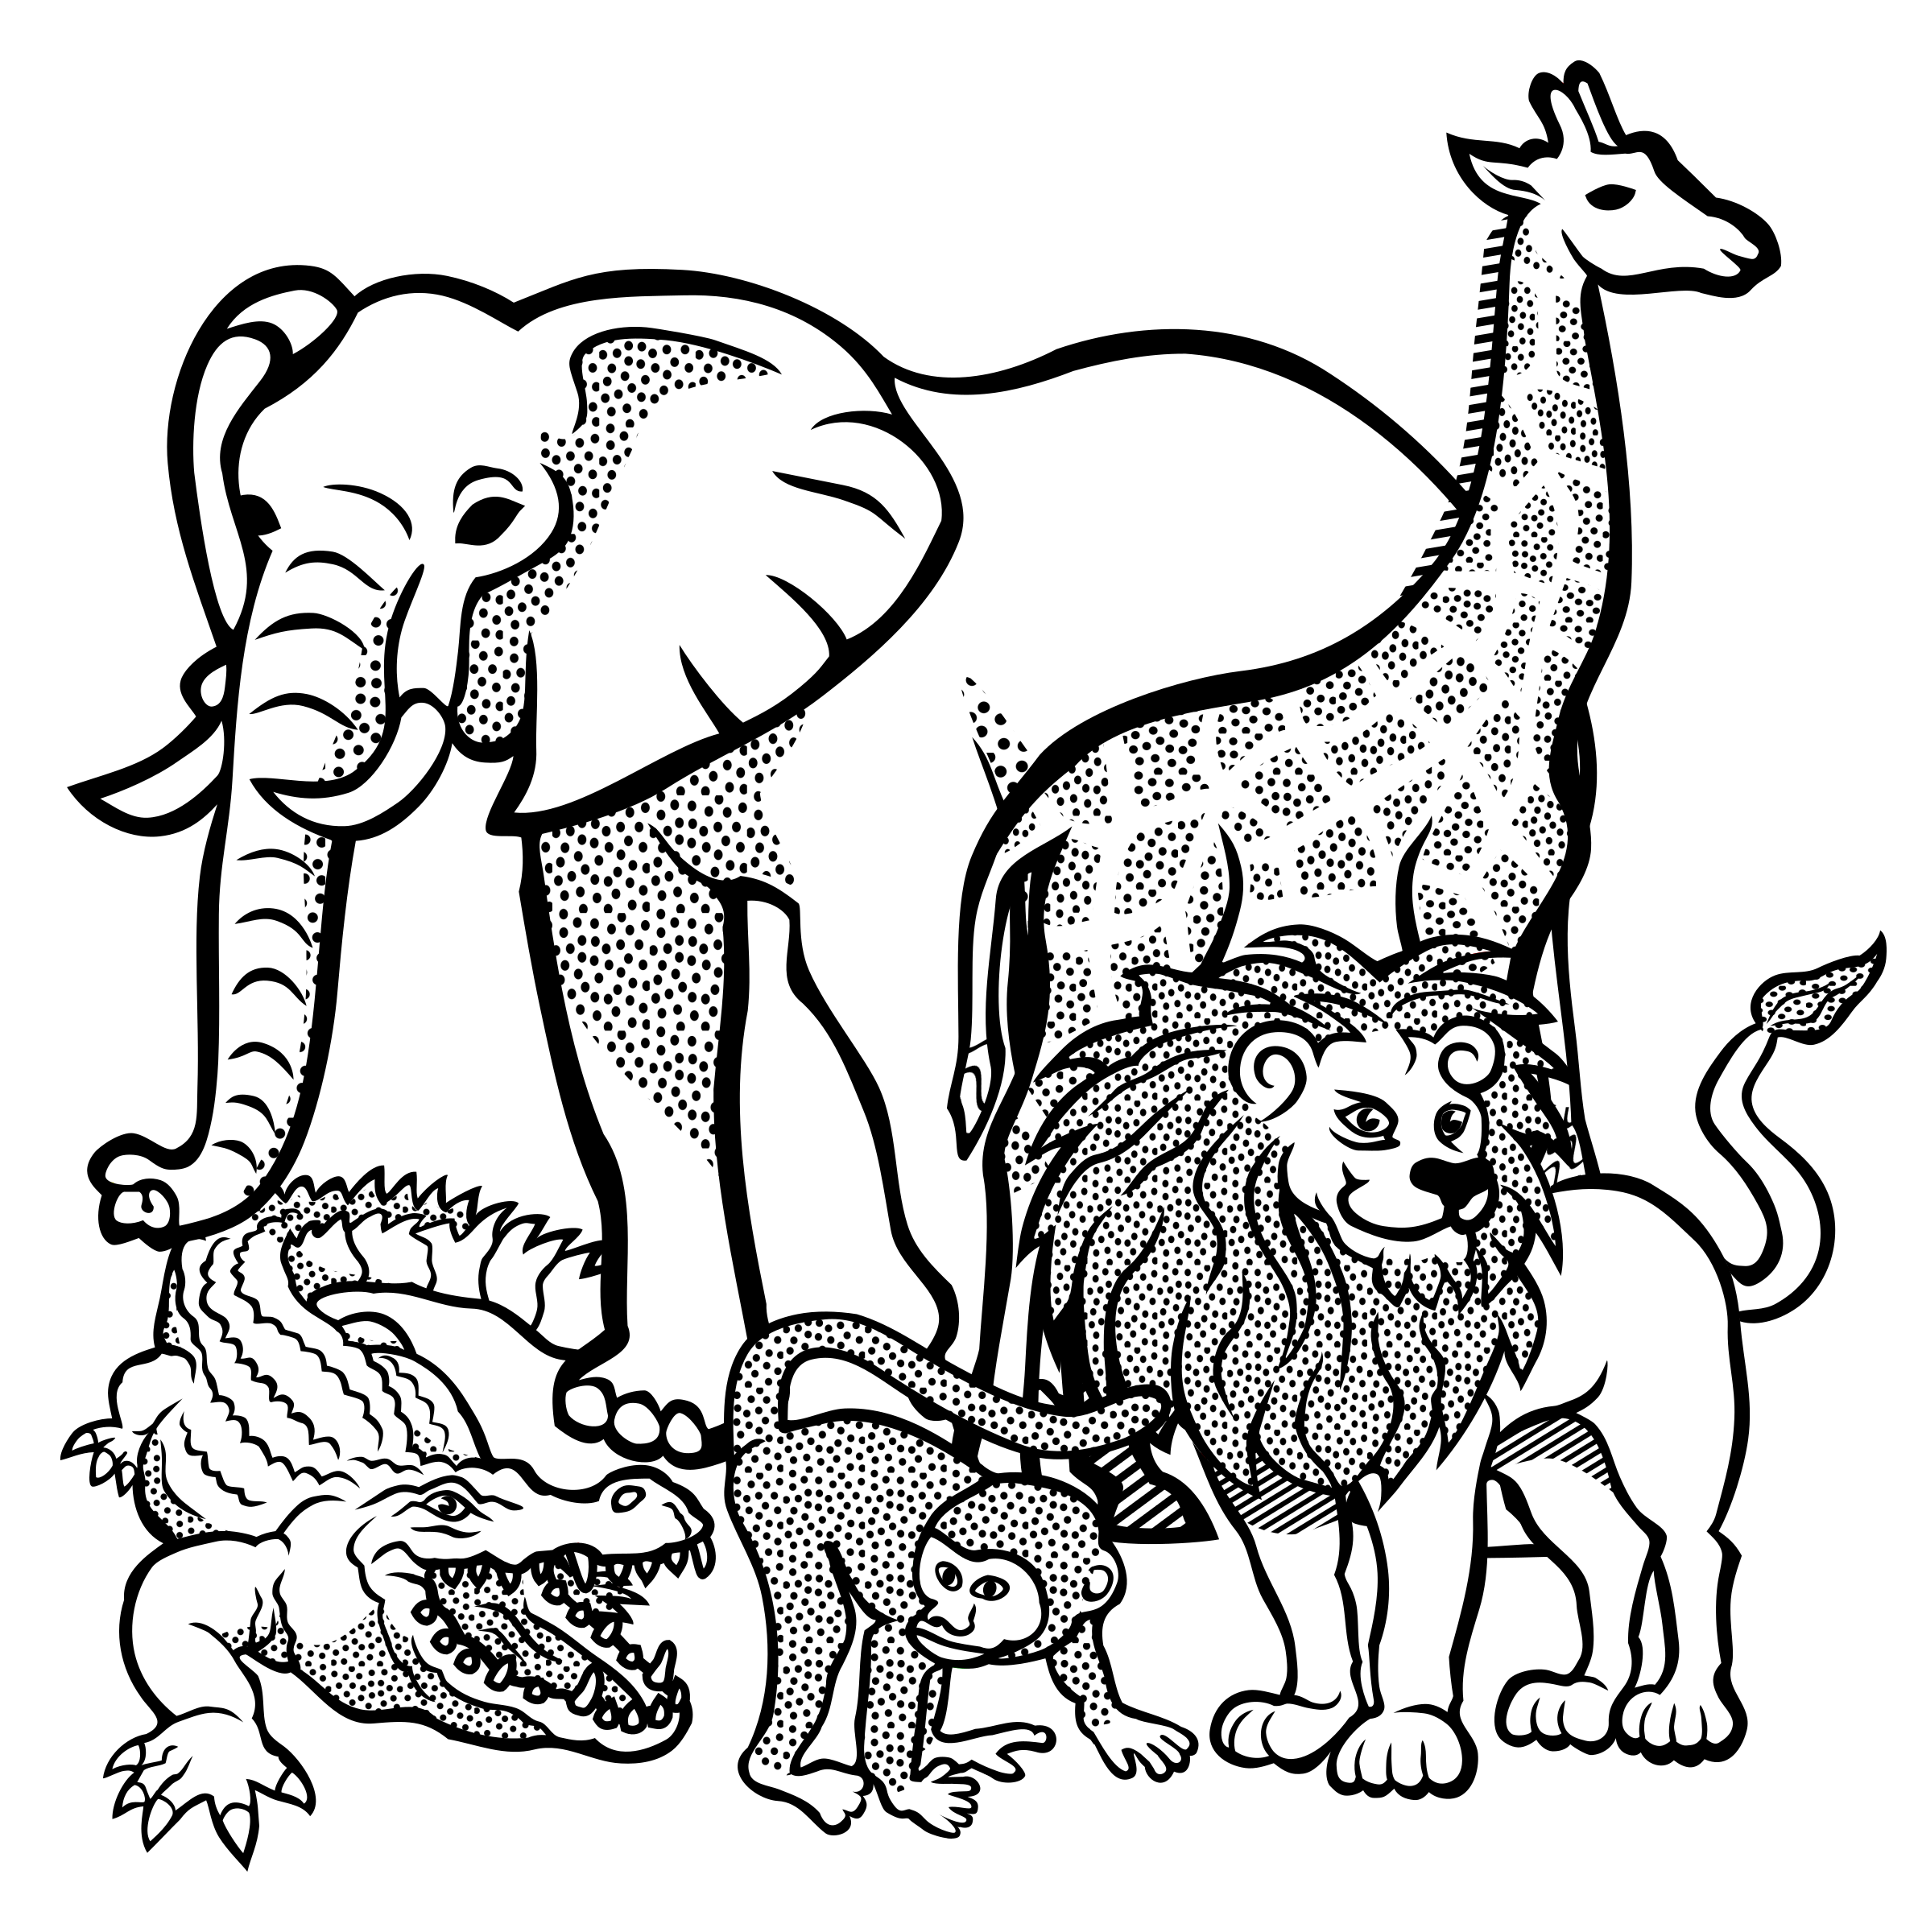 jpg royalty free Drawing pic animal. Outlines at getdrawings com